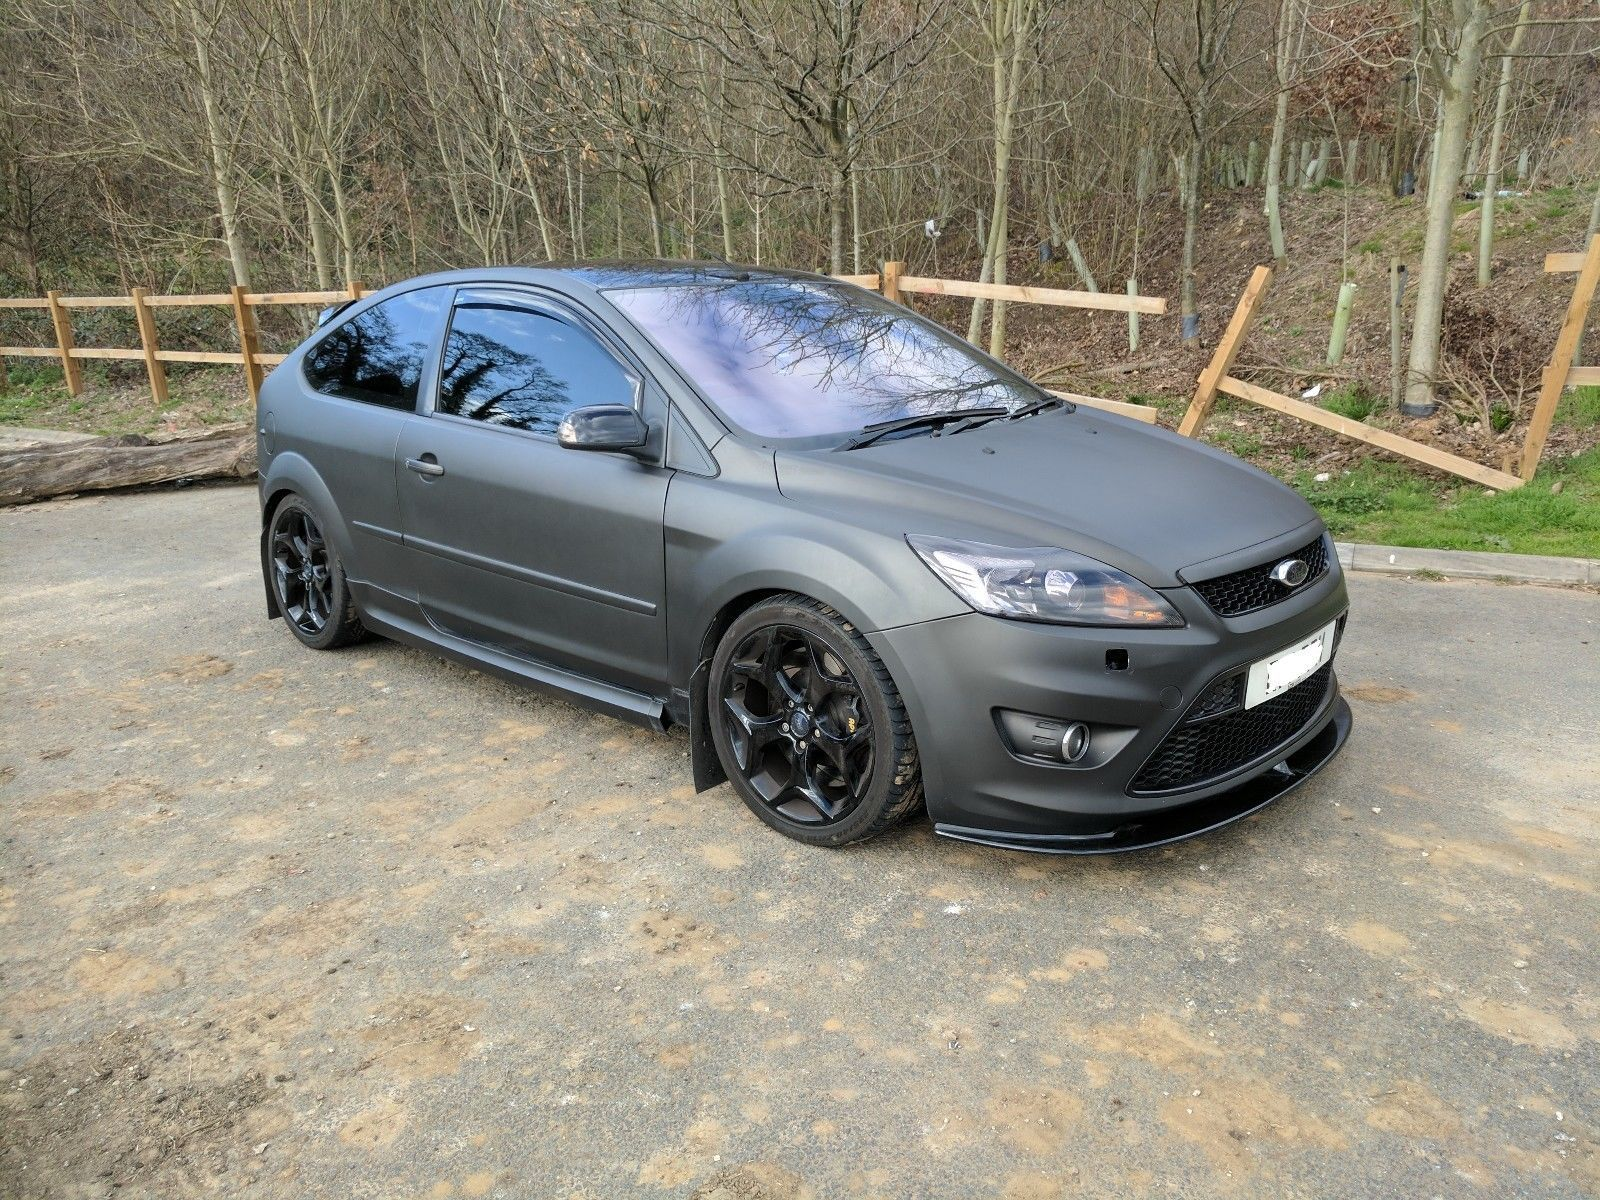 Check Out This Fast Ford Ford Focus St Rs 500 Bhp 30k Mods